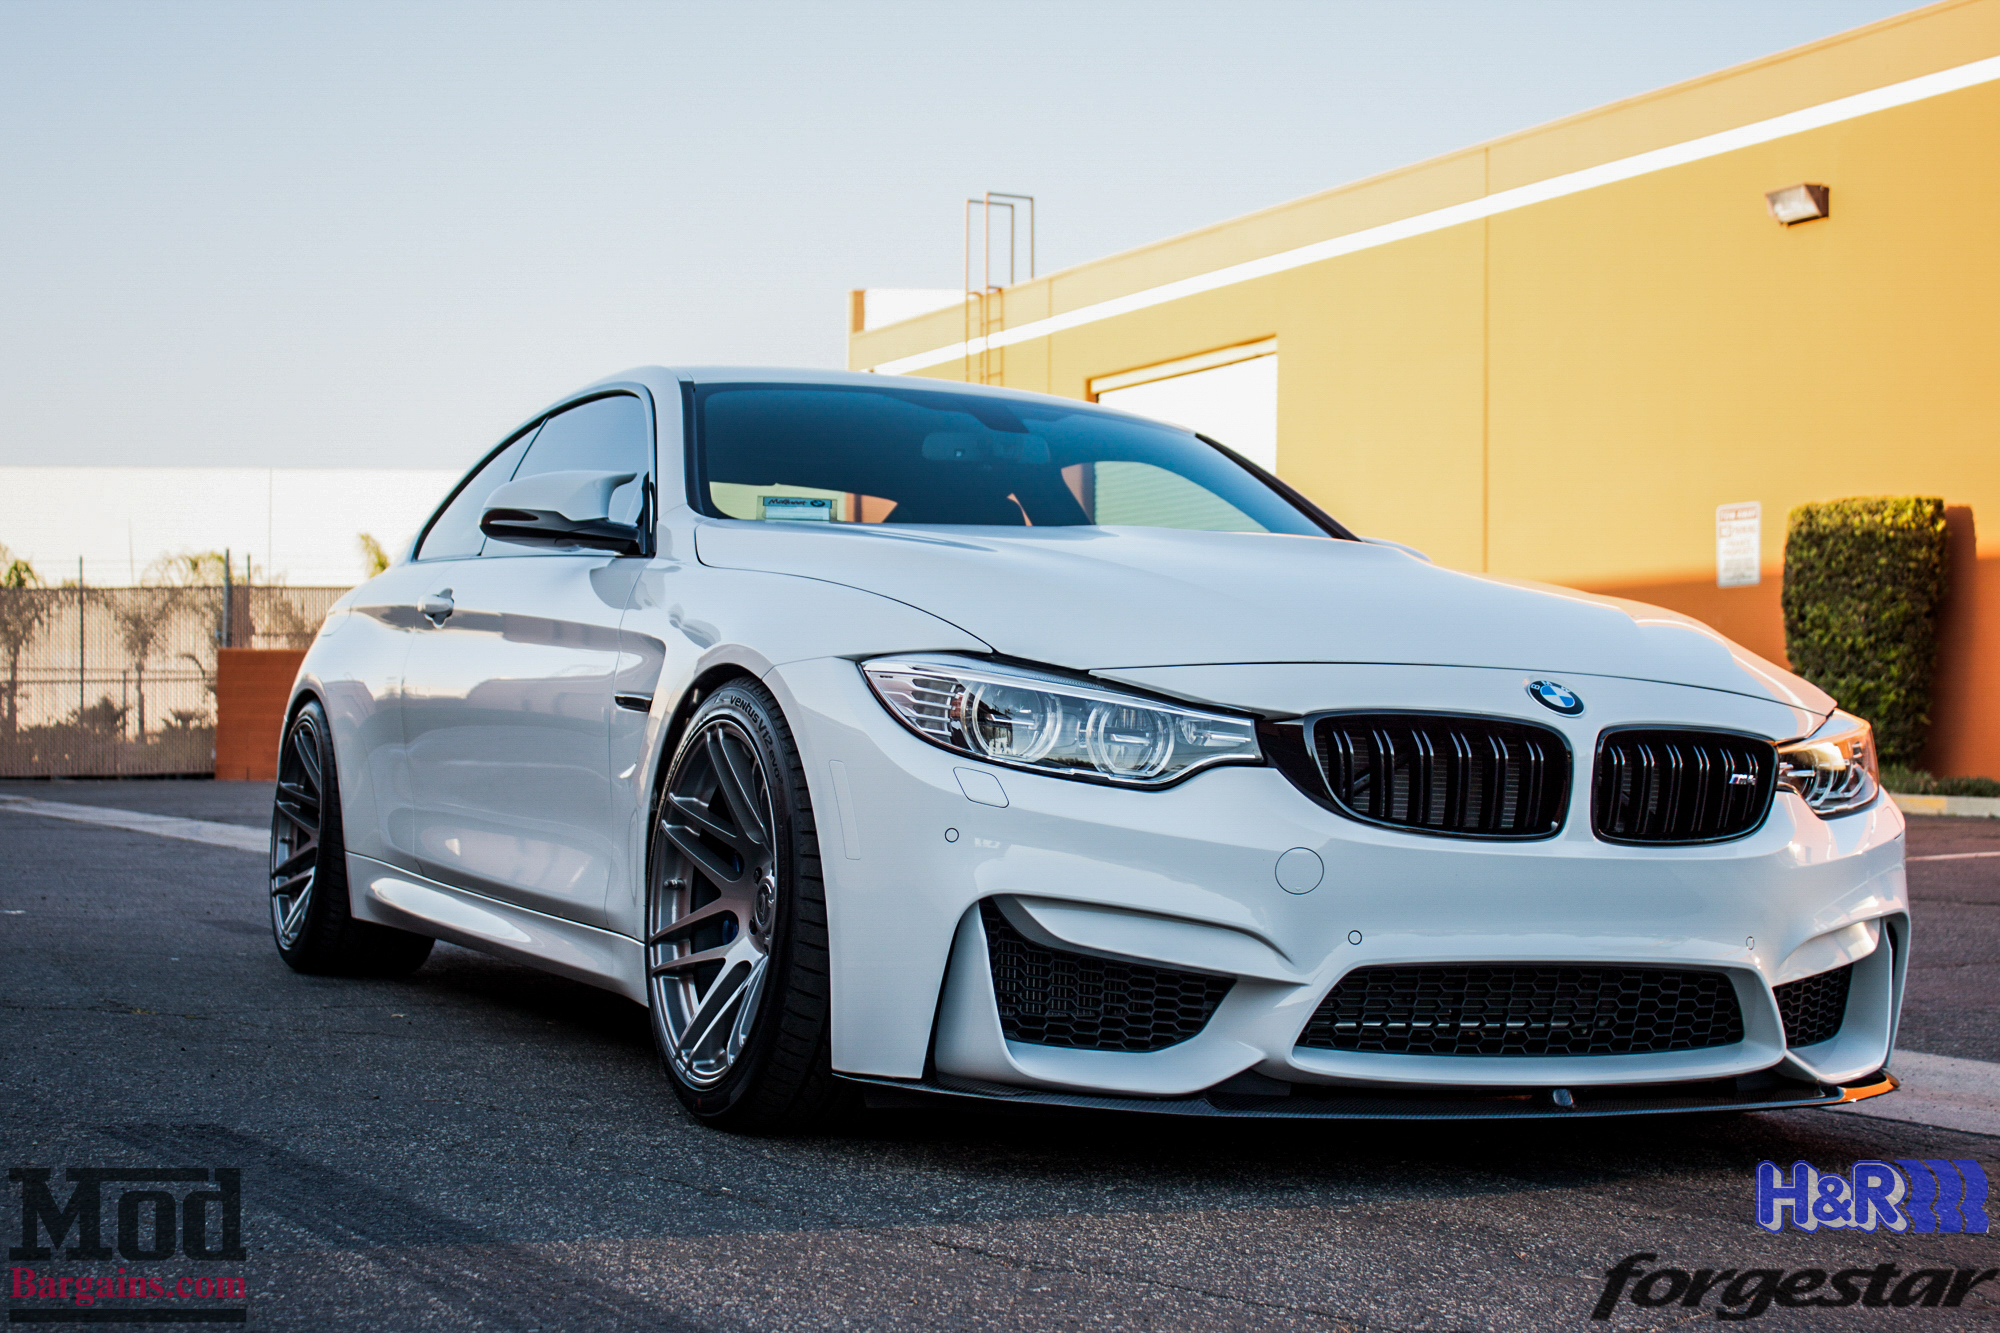 F82 BMW M4 Gets Remus Exhaust + F14s 2B Show-Ready